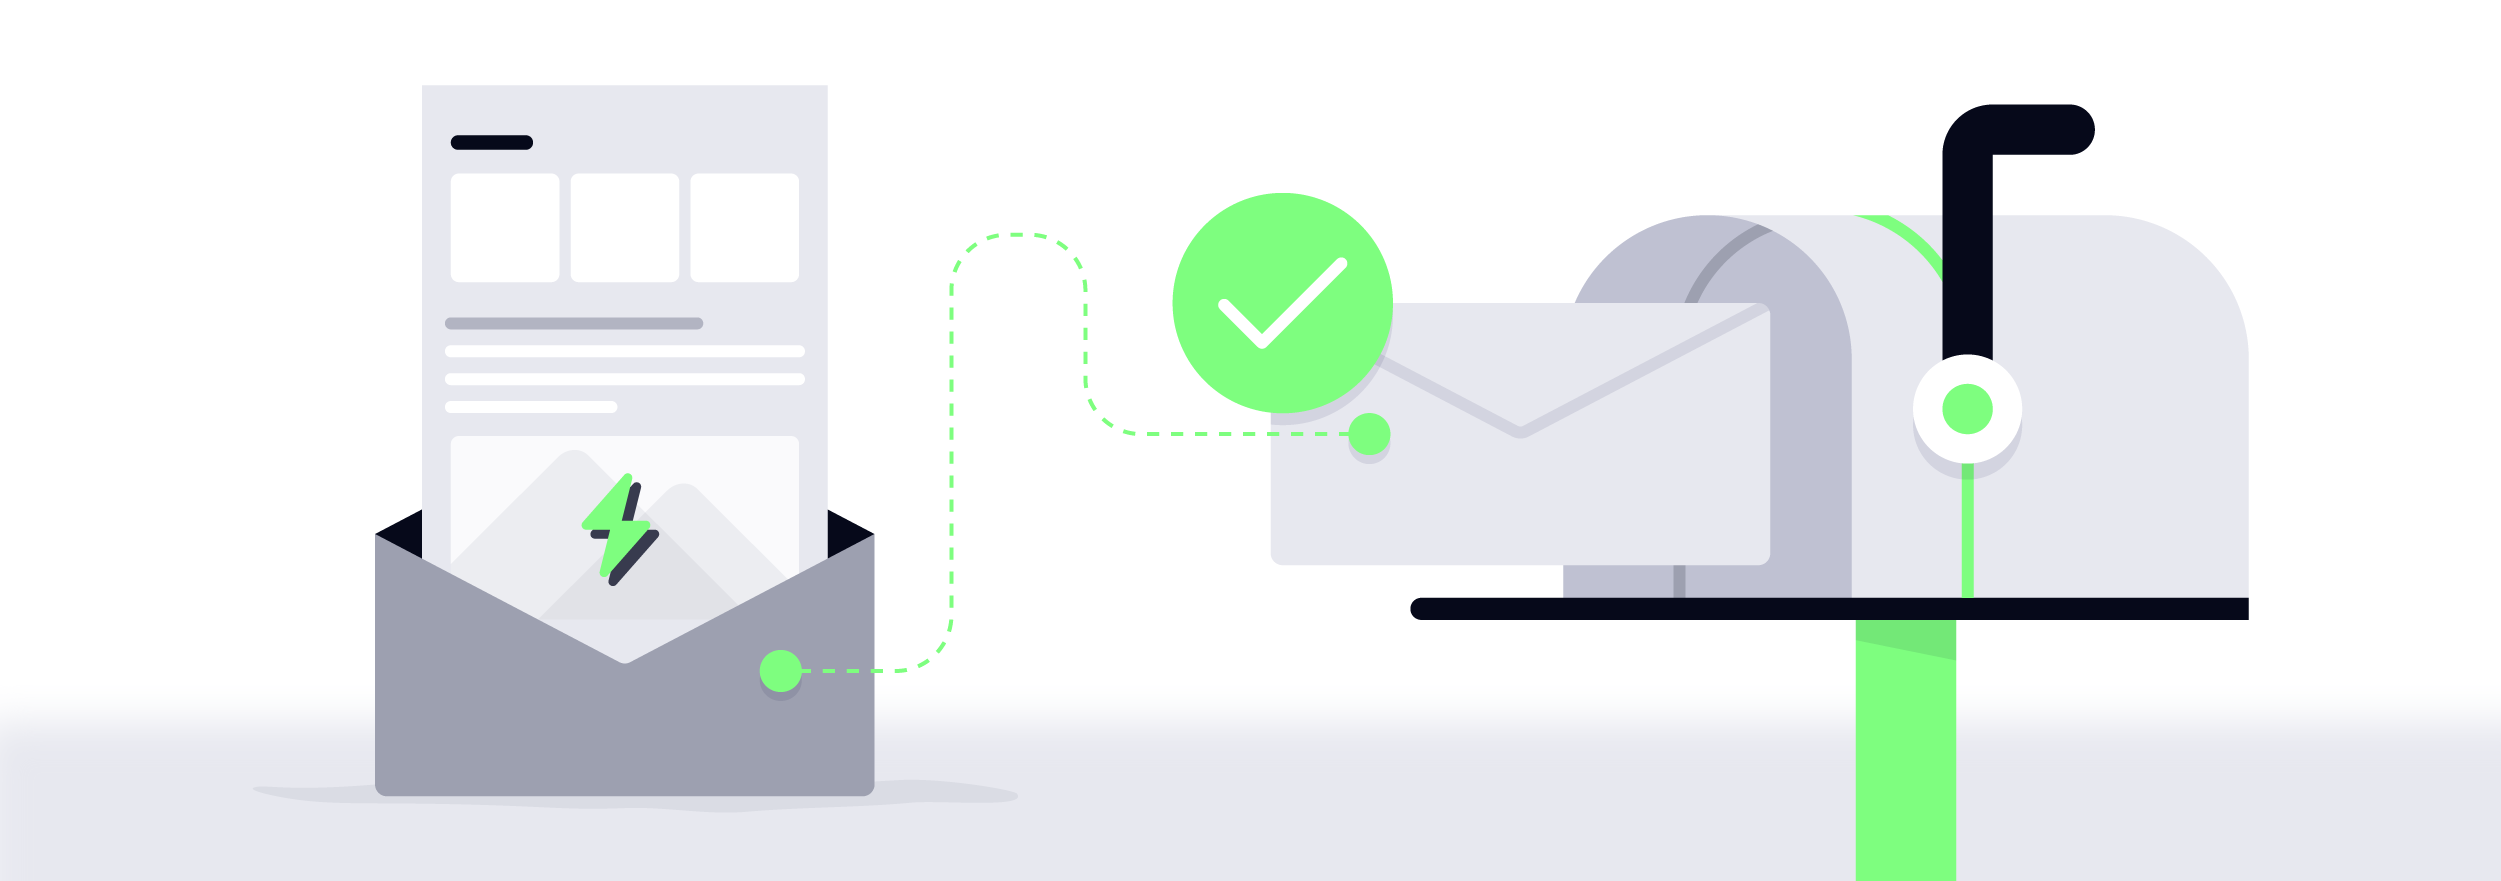 5 Email Deliverability Best Practices to Boost Your Inbox Reach